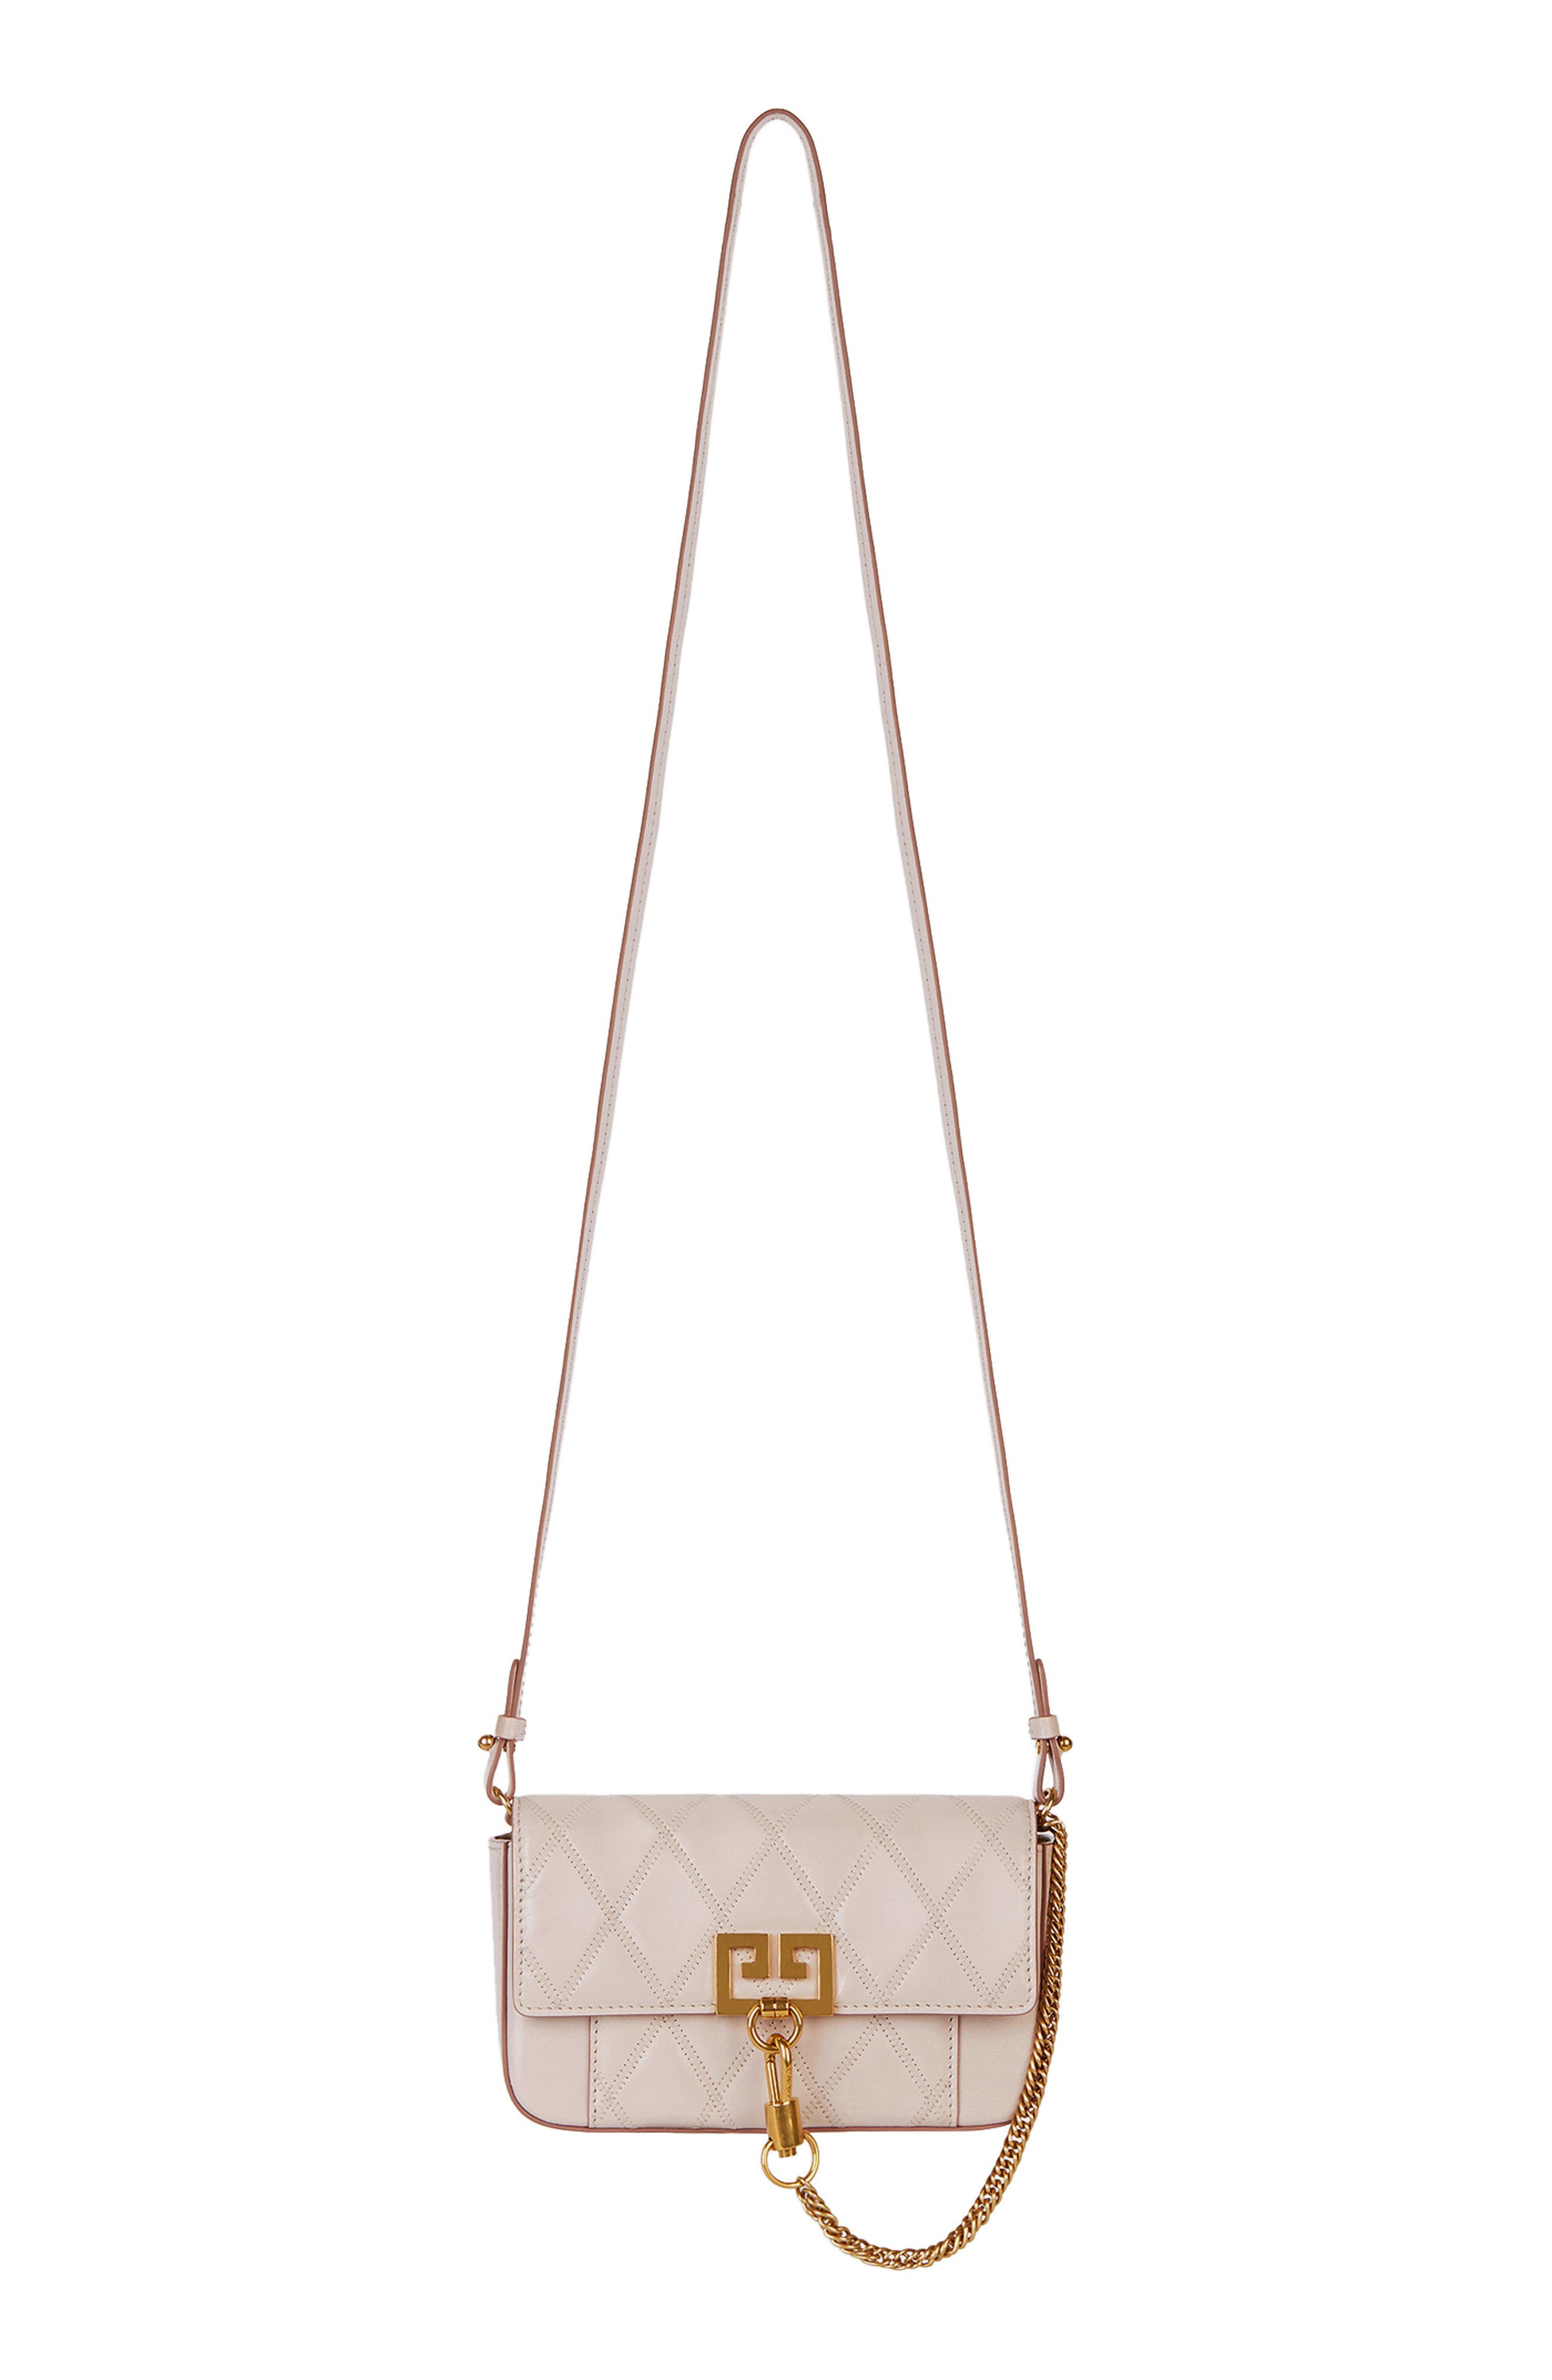 GIVENCHY,                             Mini Pocket Quilted Convertible Leather Bag,                             Main thumbnail 1, color,                             PALE PINK